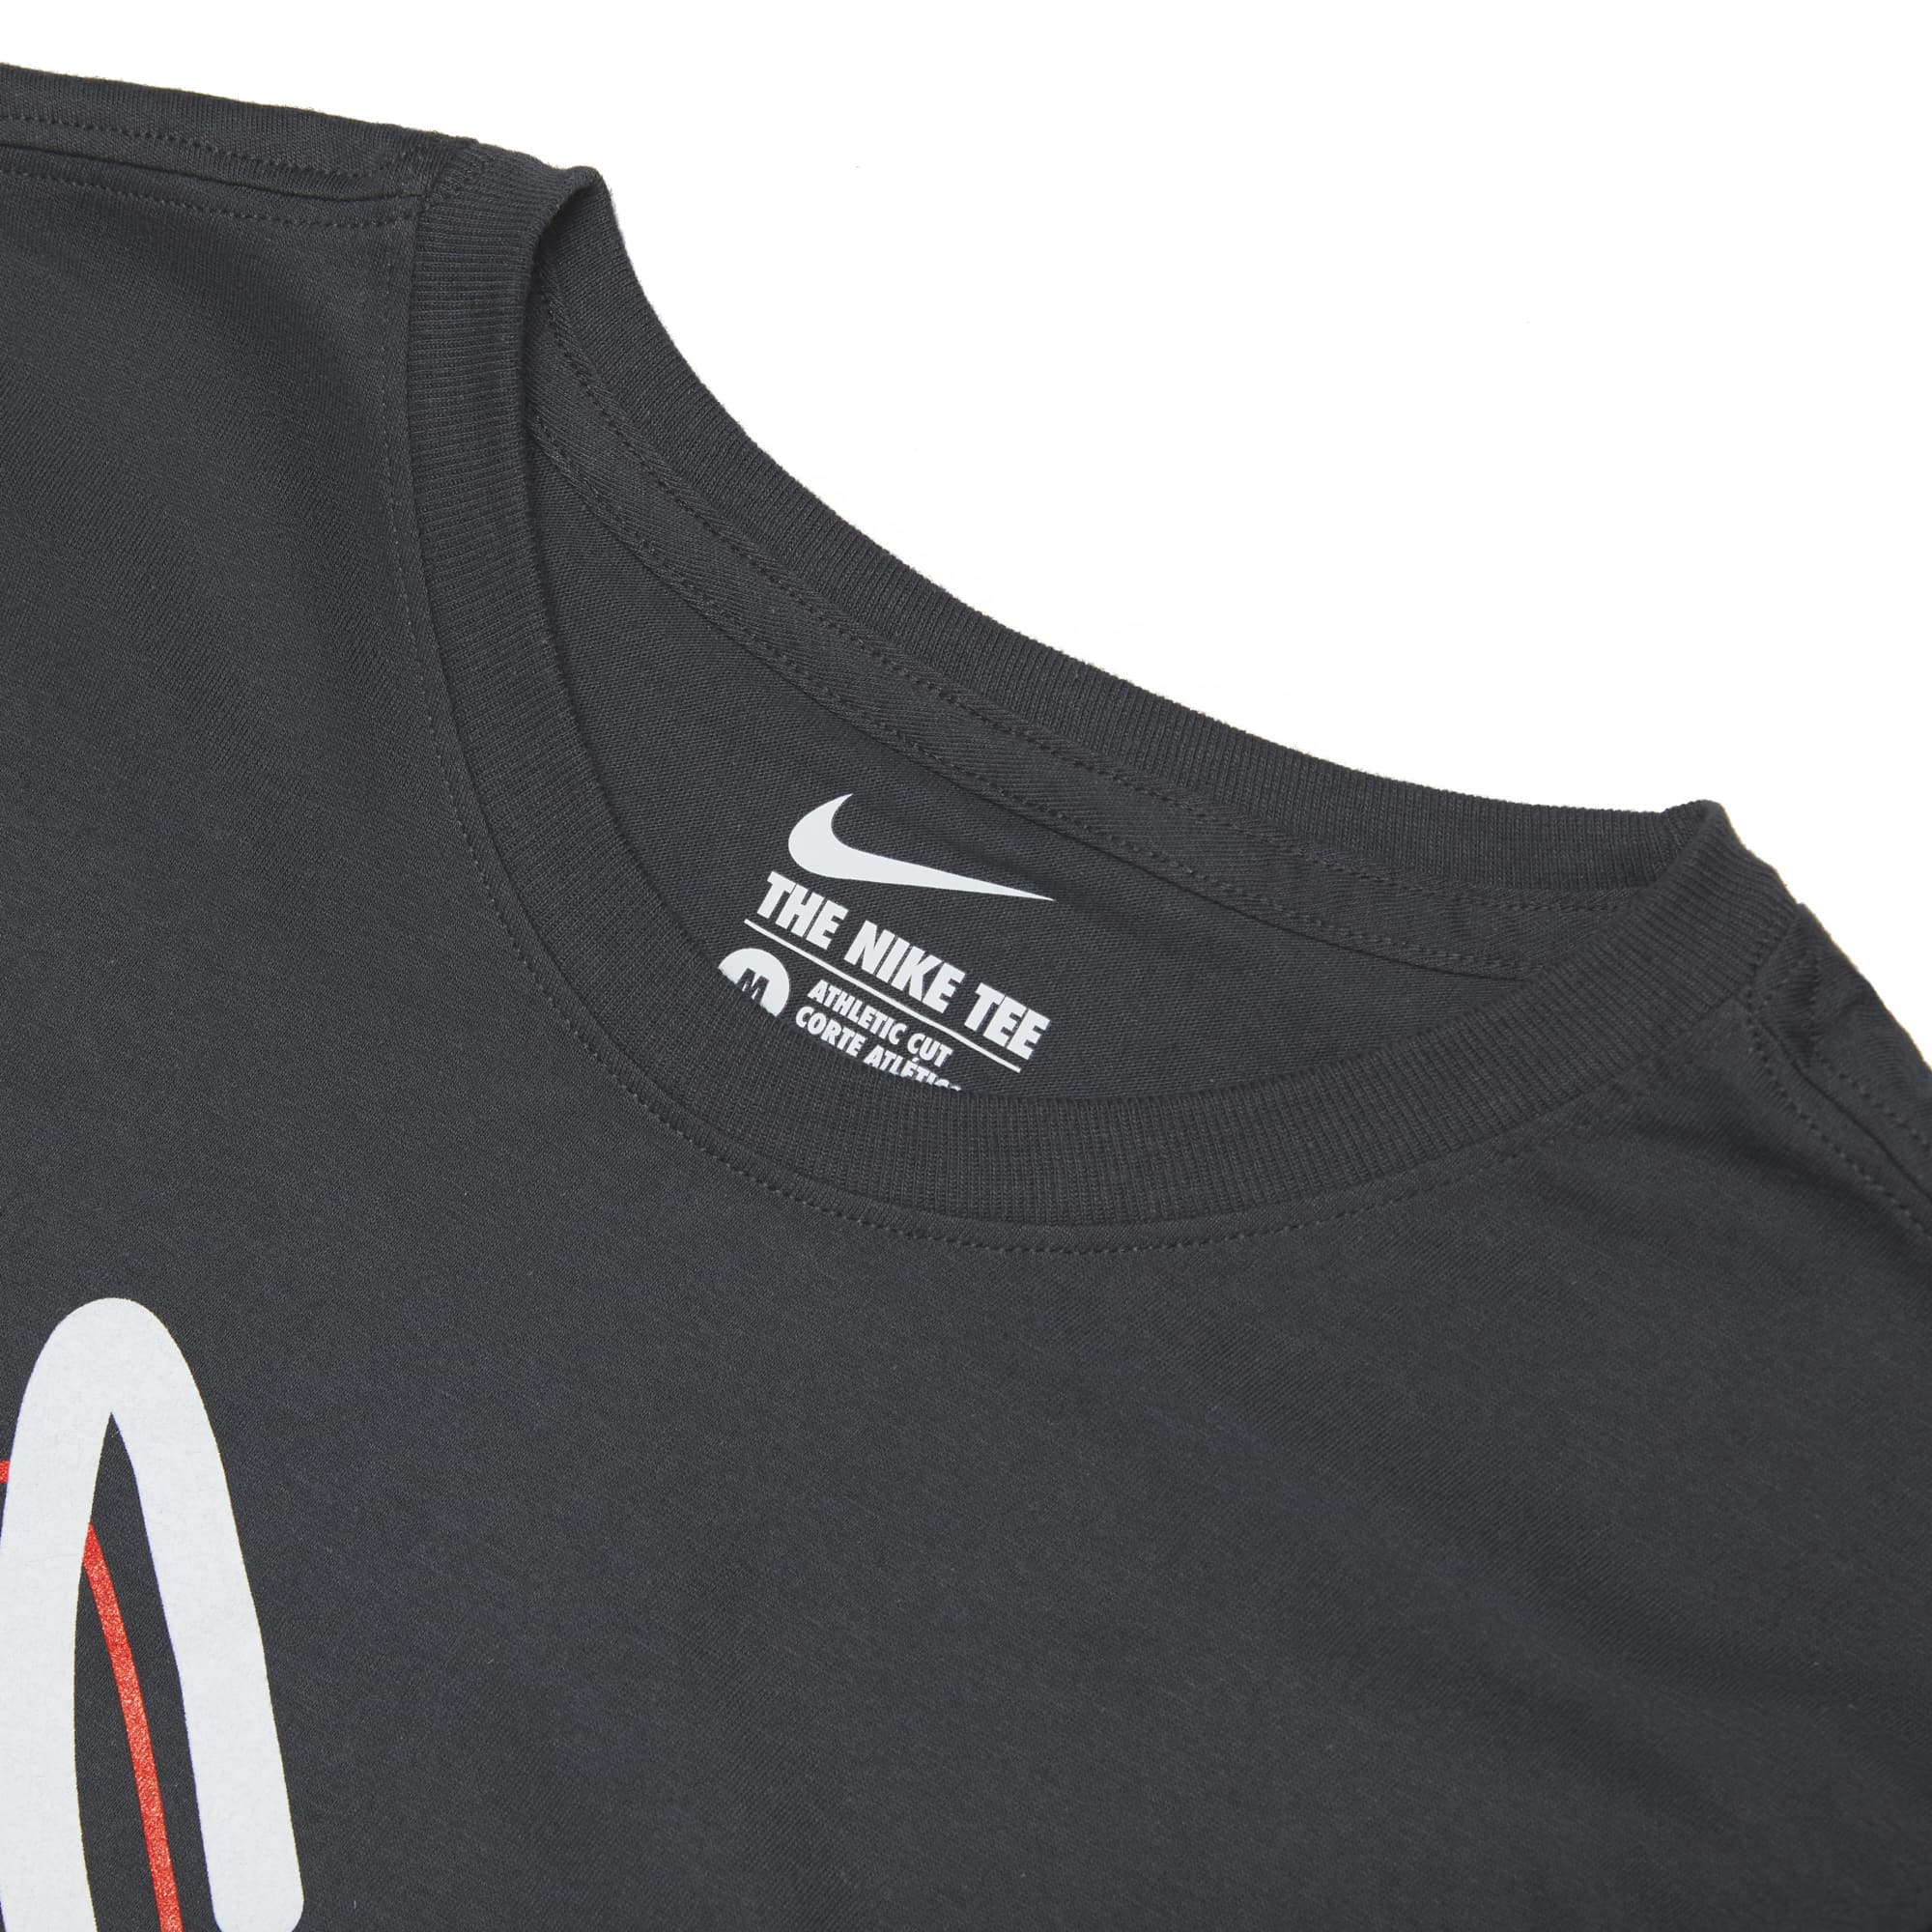 116 x Nike Core Long Sleeve Tee - Charcoal